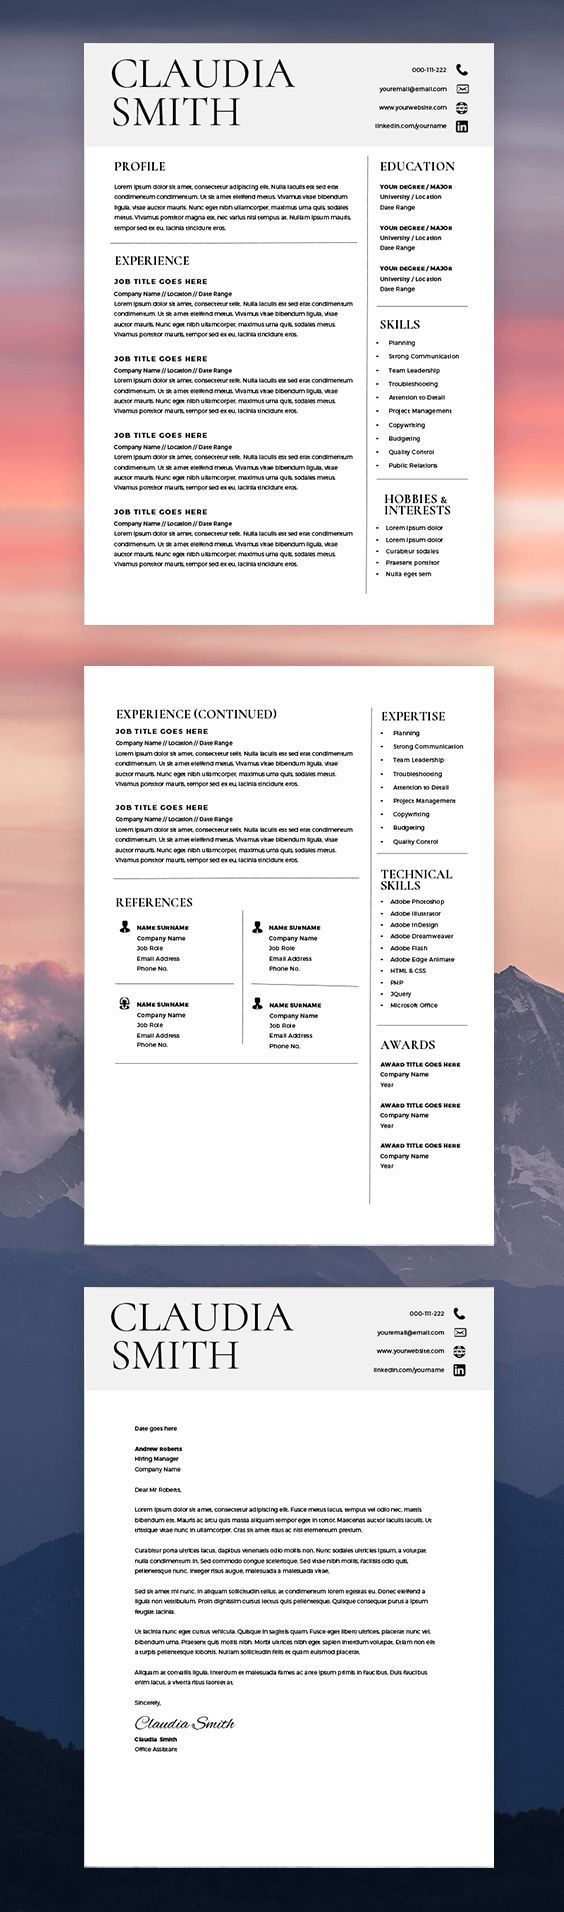 Medical Resume Template Word Minimalist Resume Free Cover Letter